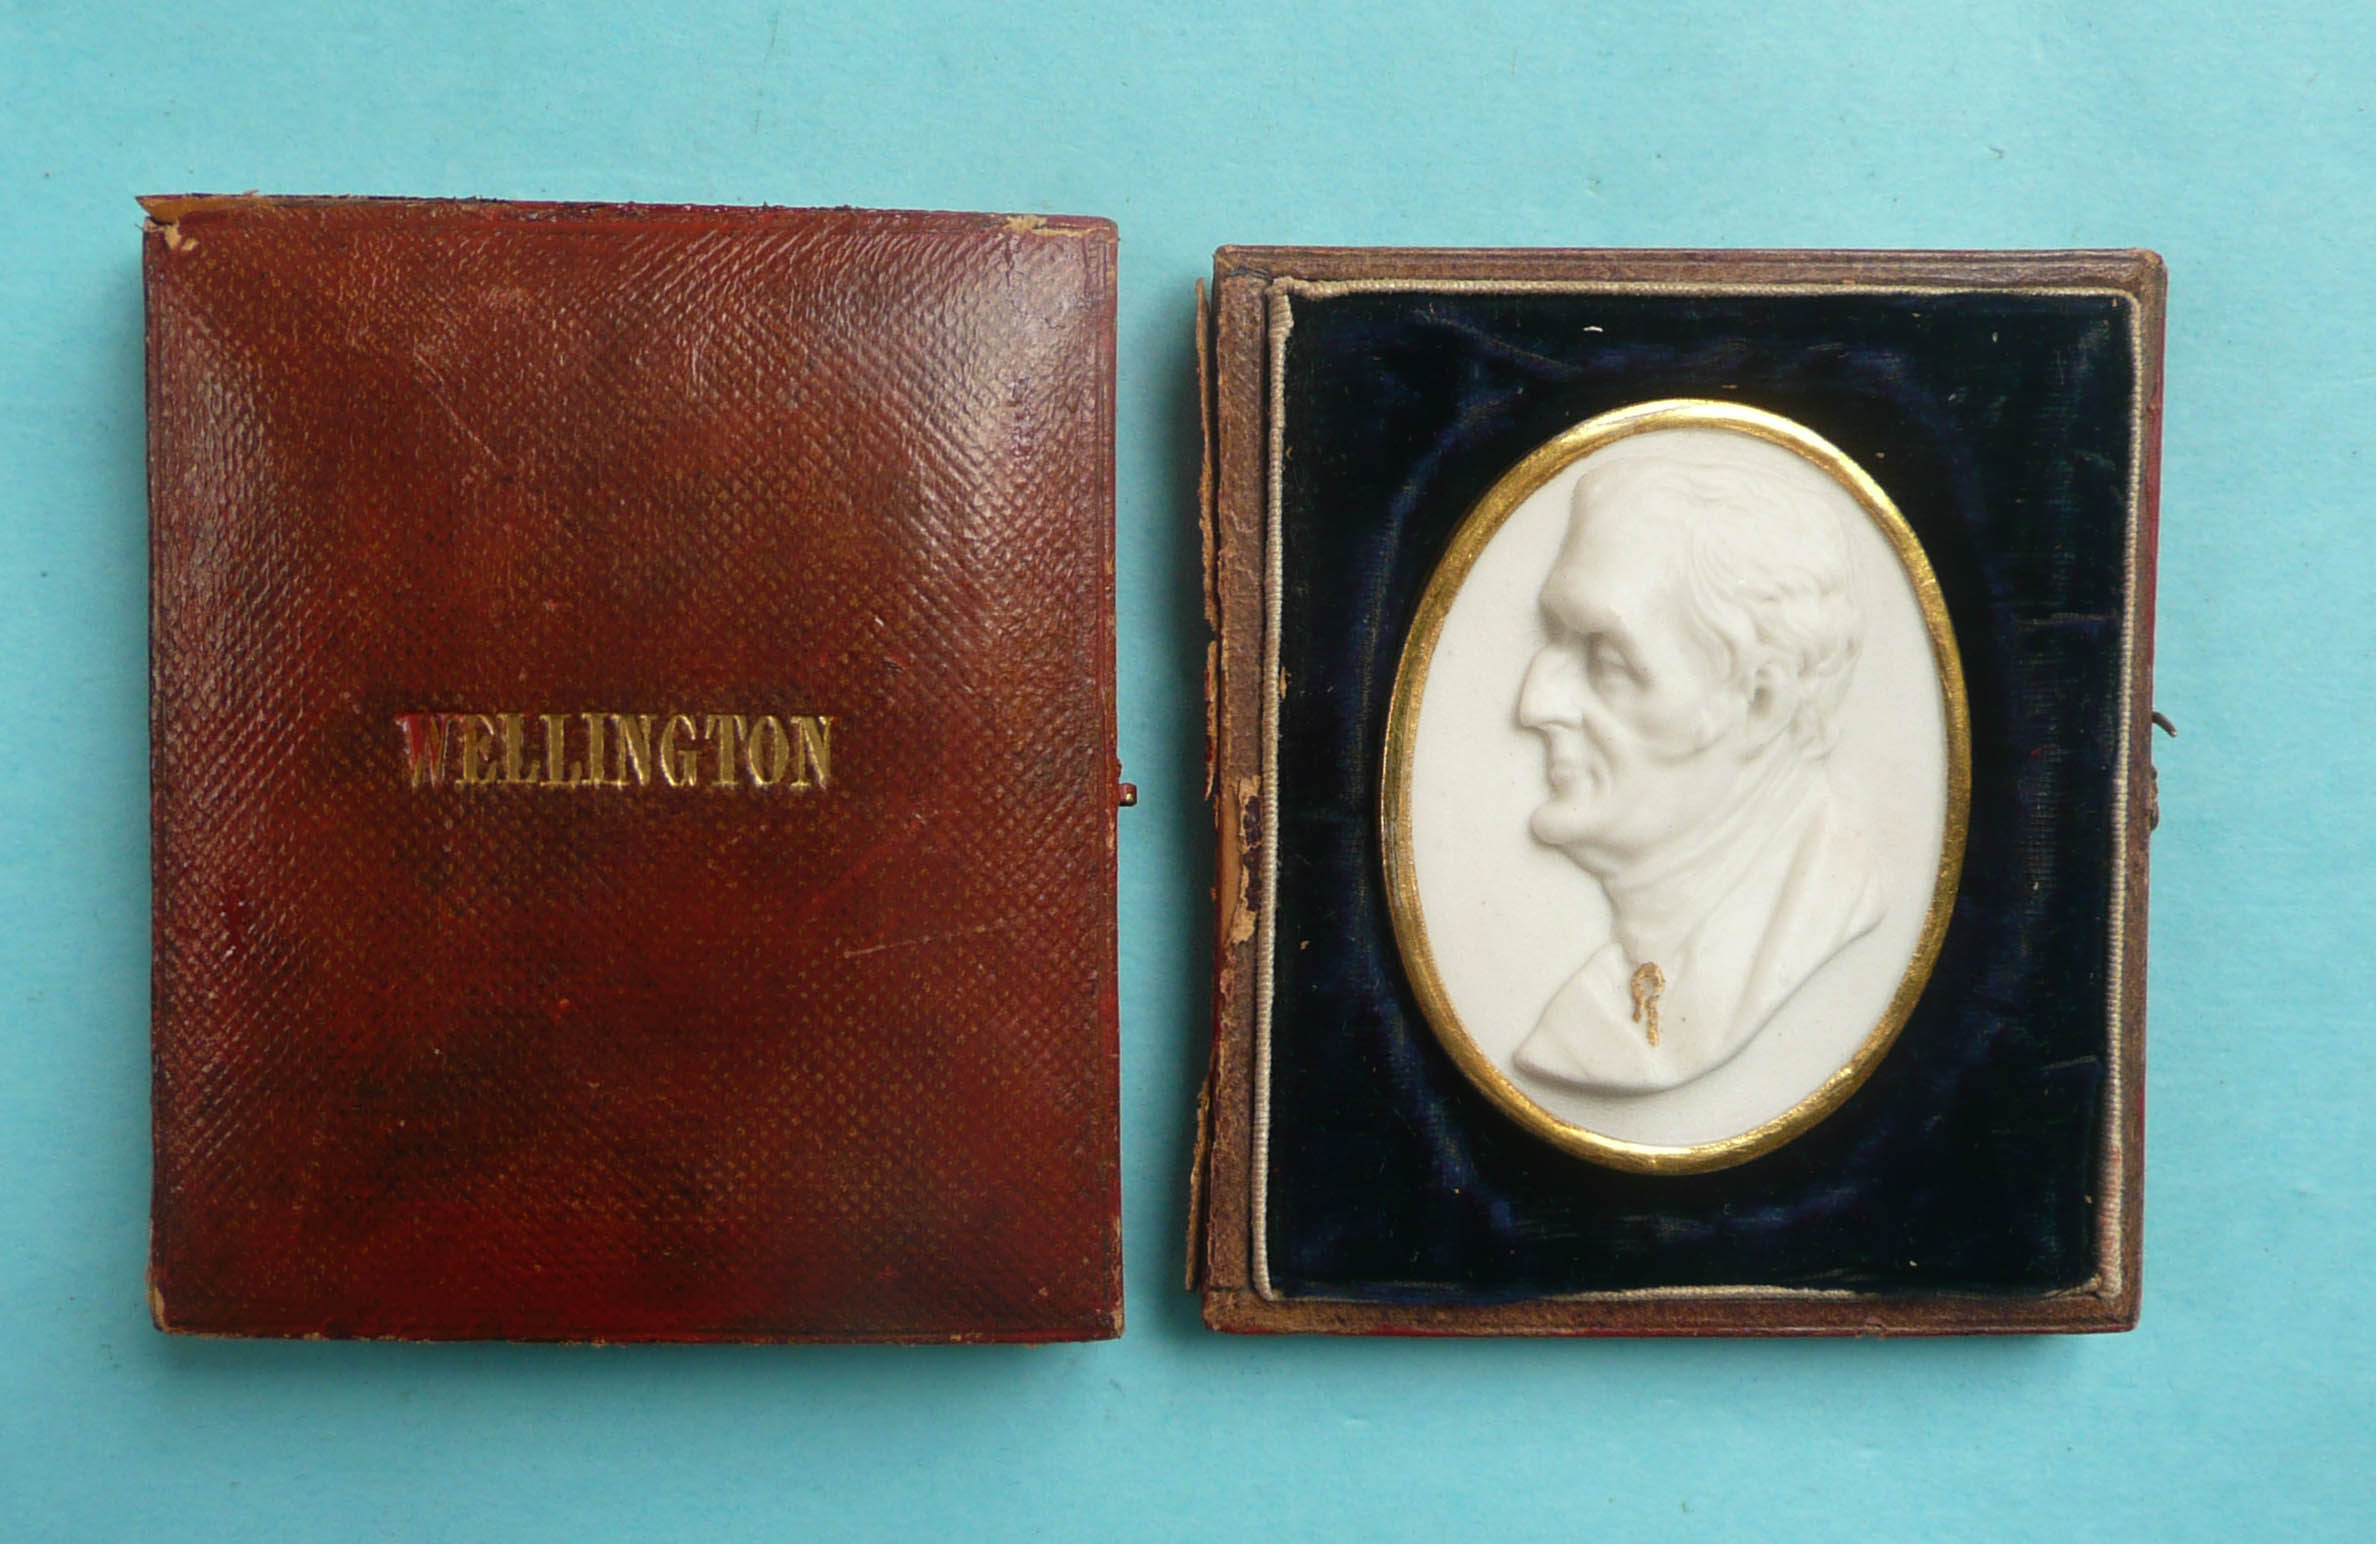 Lot 29 - Wellington: a good memorial broach modelled in white parian as a head in profile looking to dexter